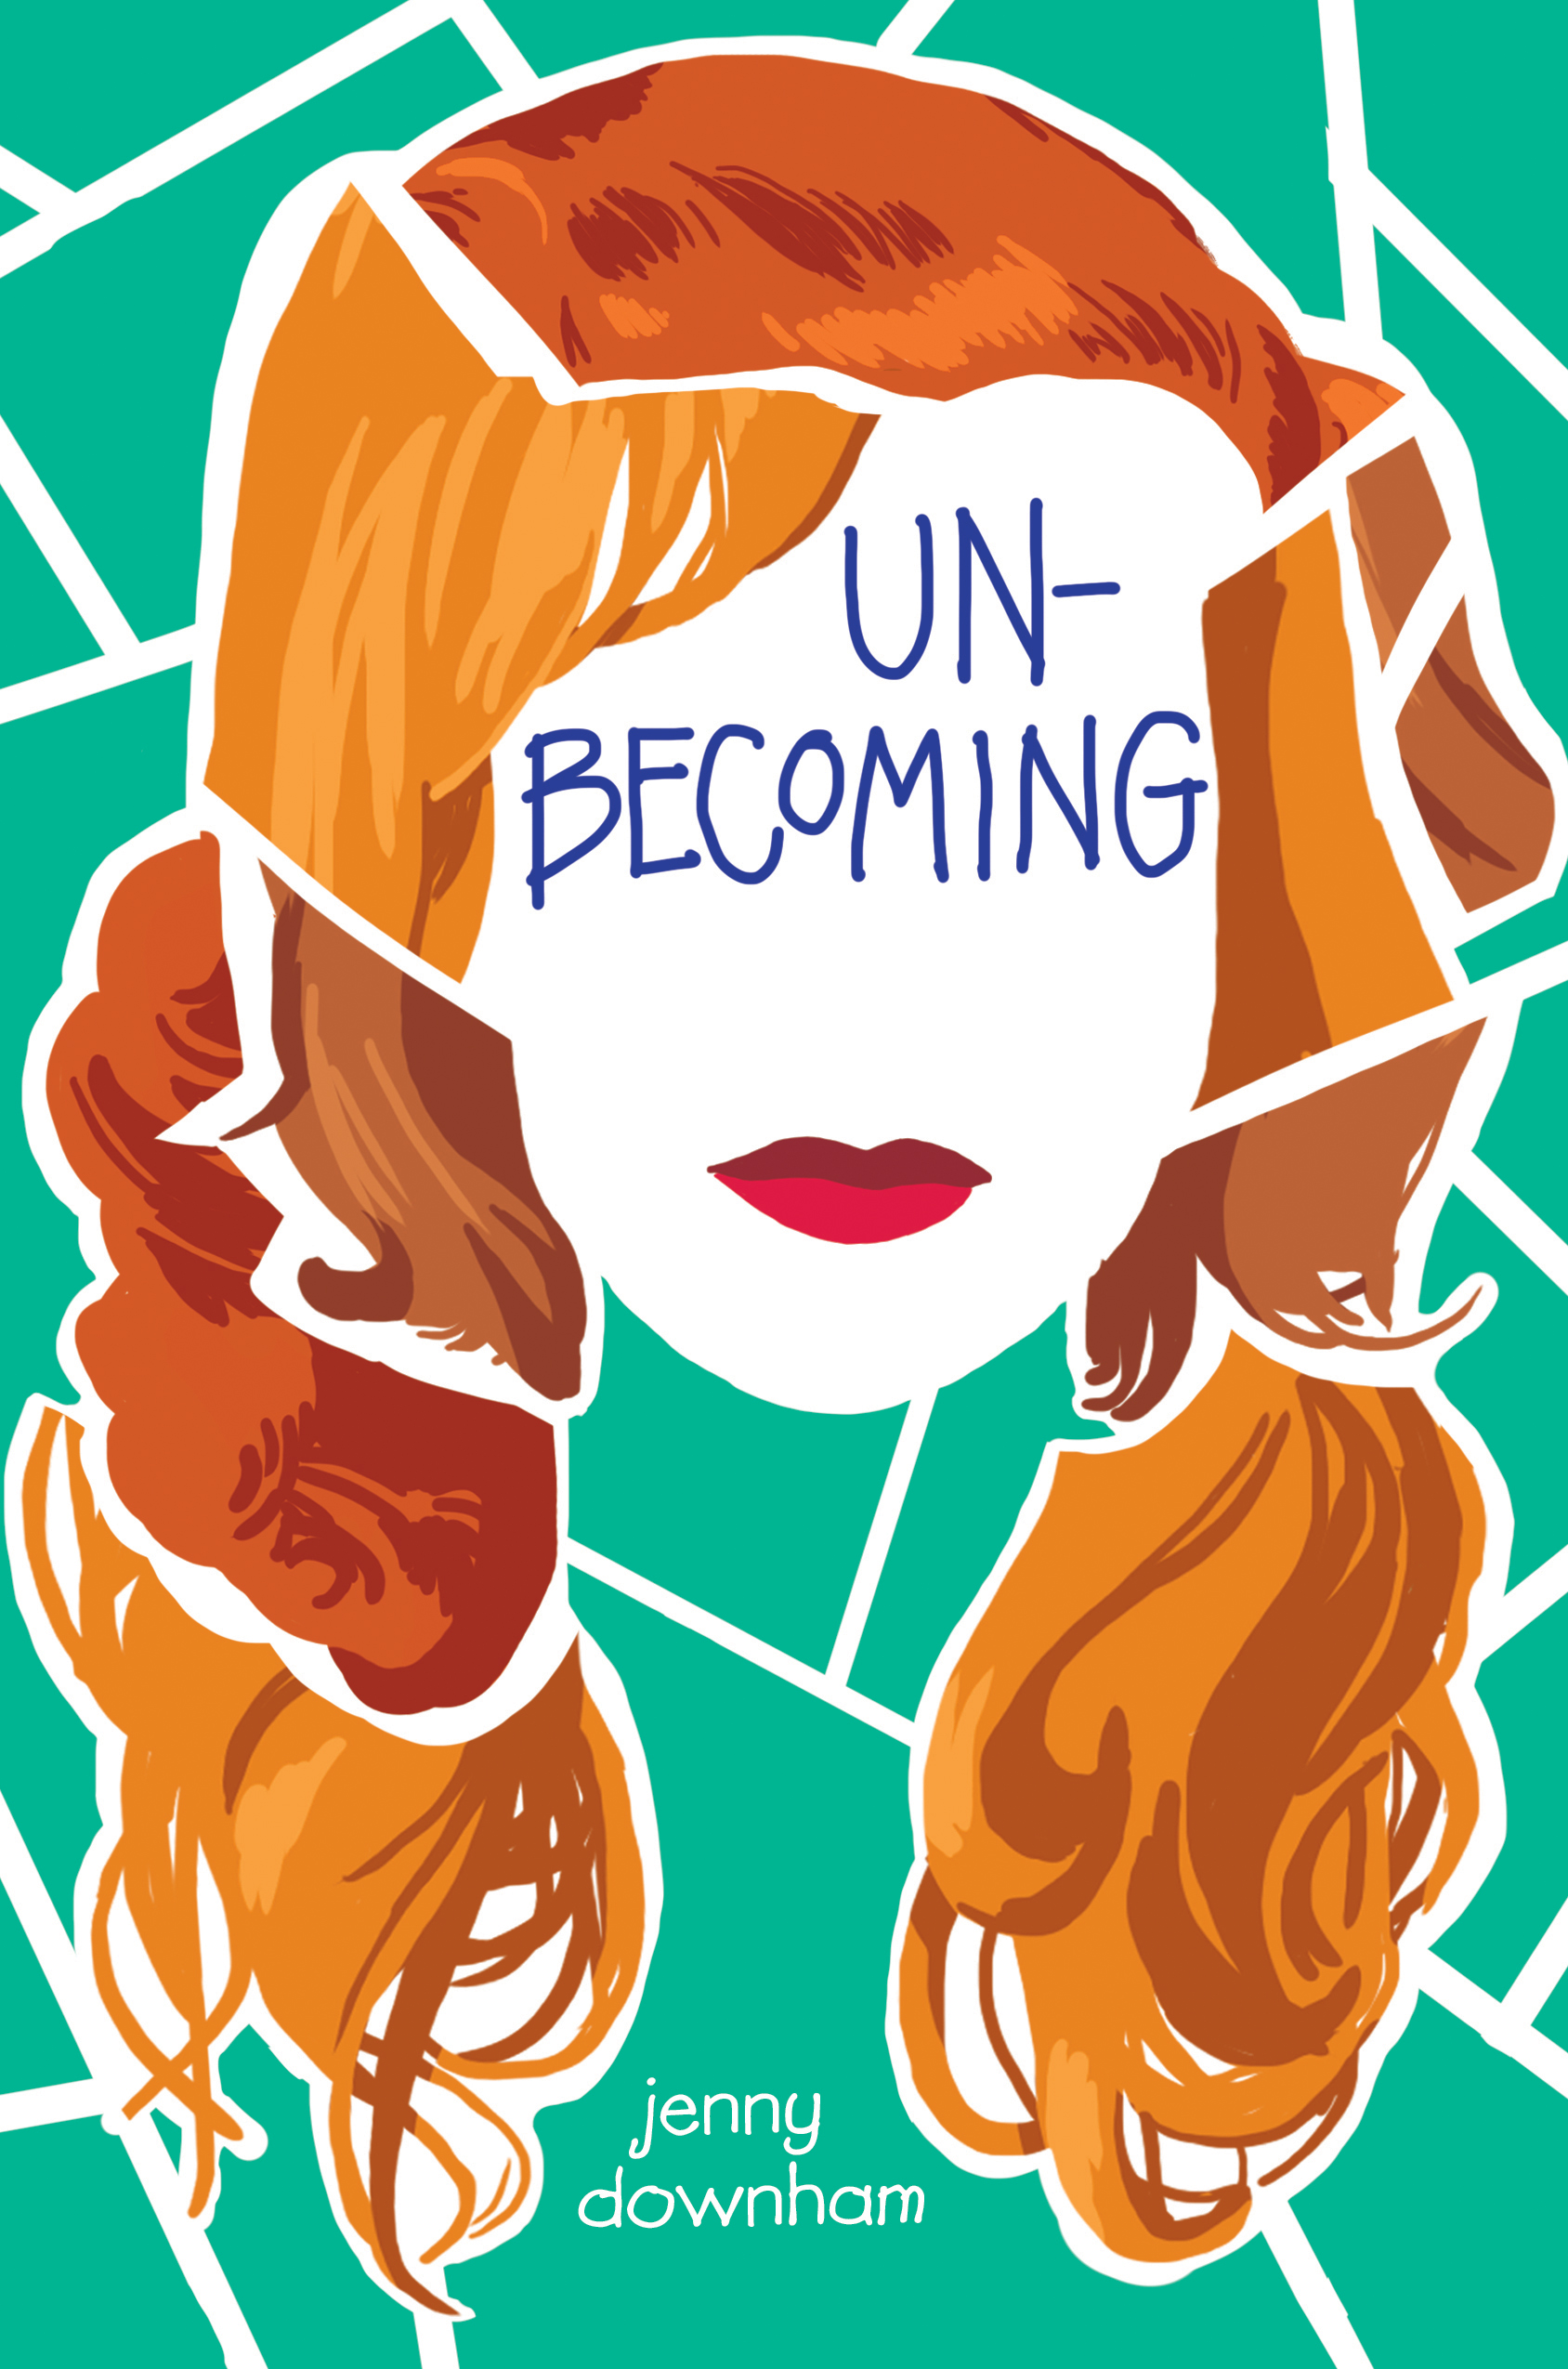 Unbecoming-reject3.jpg